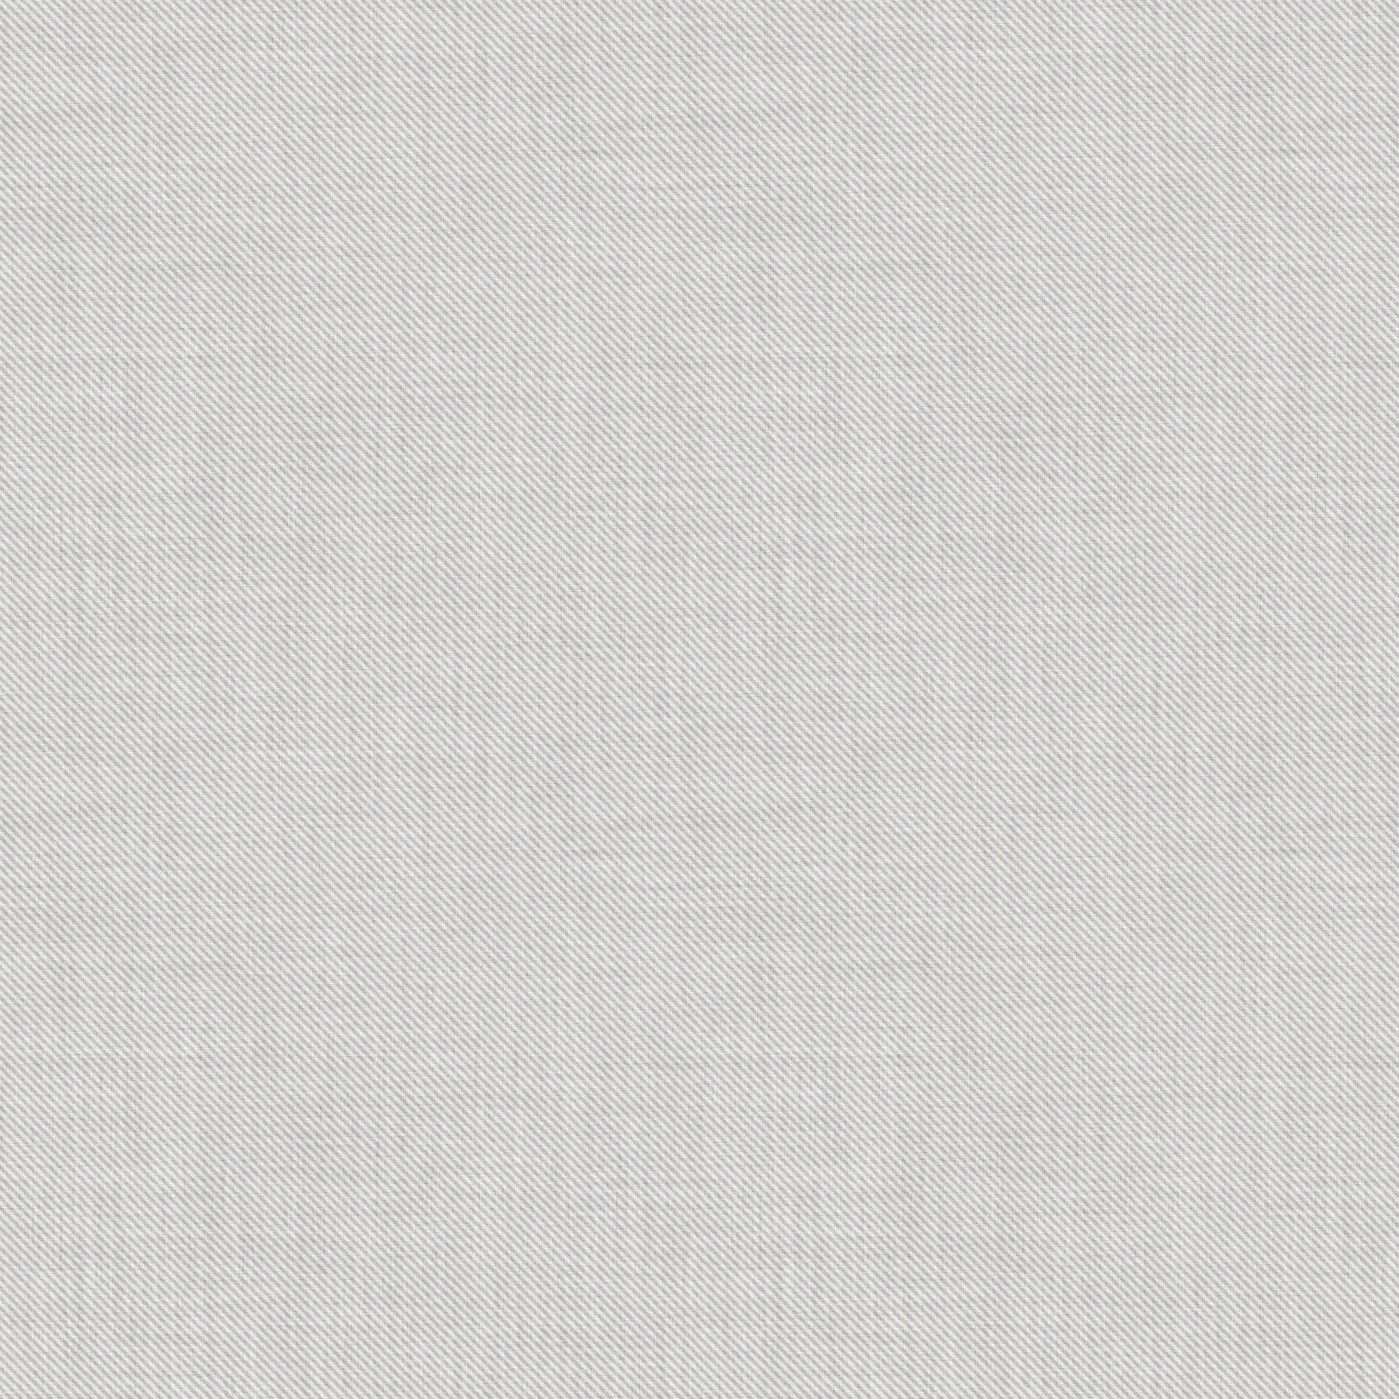 texturise: Seamless Grey Fabric Texture   Normal Map | Textures ... for Grey Fabric Texture Seamless  587fsj